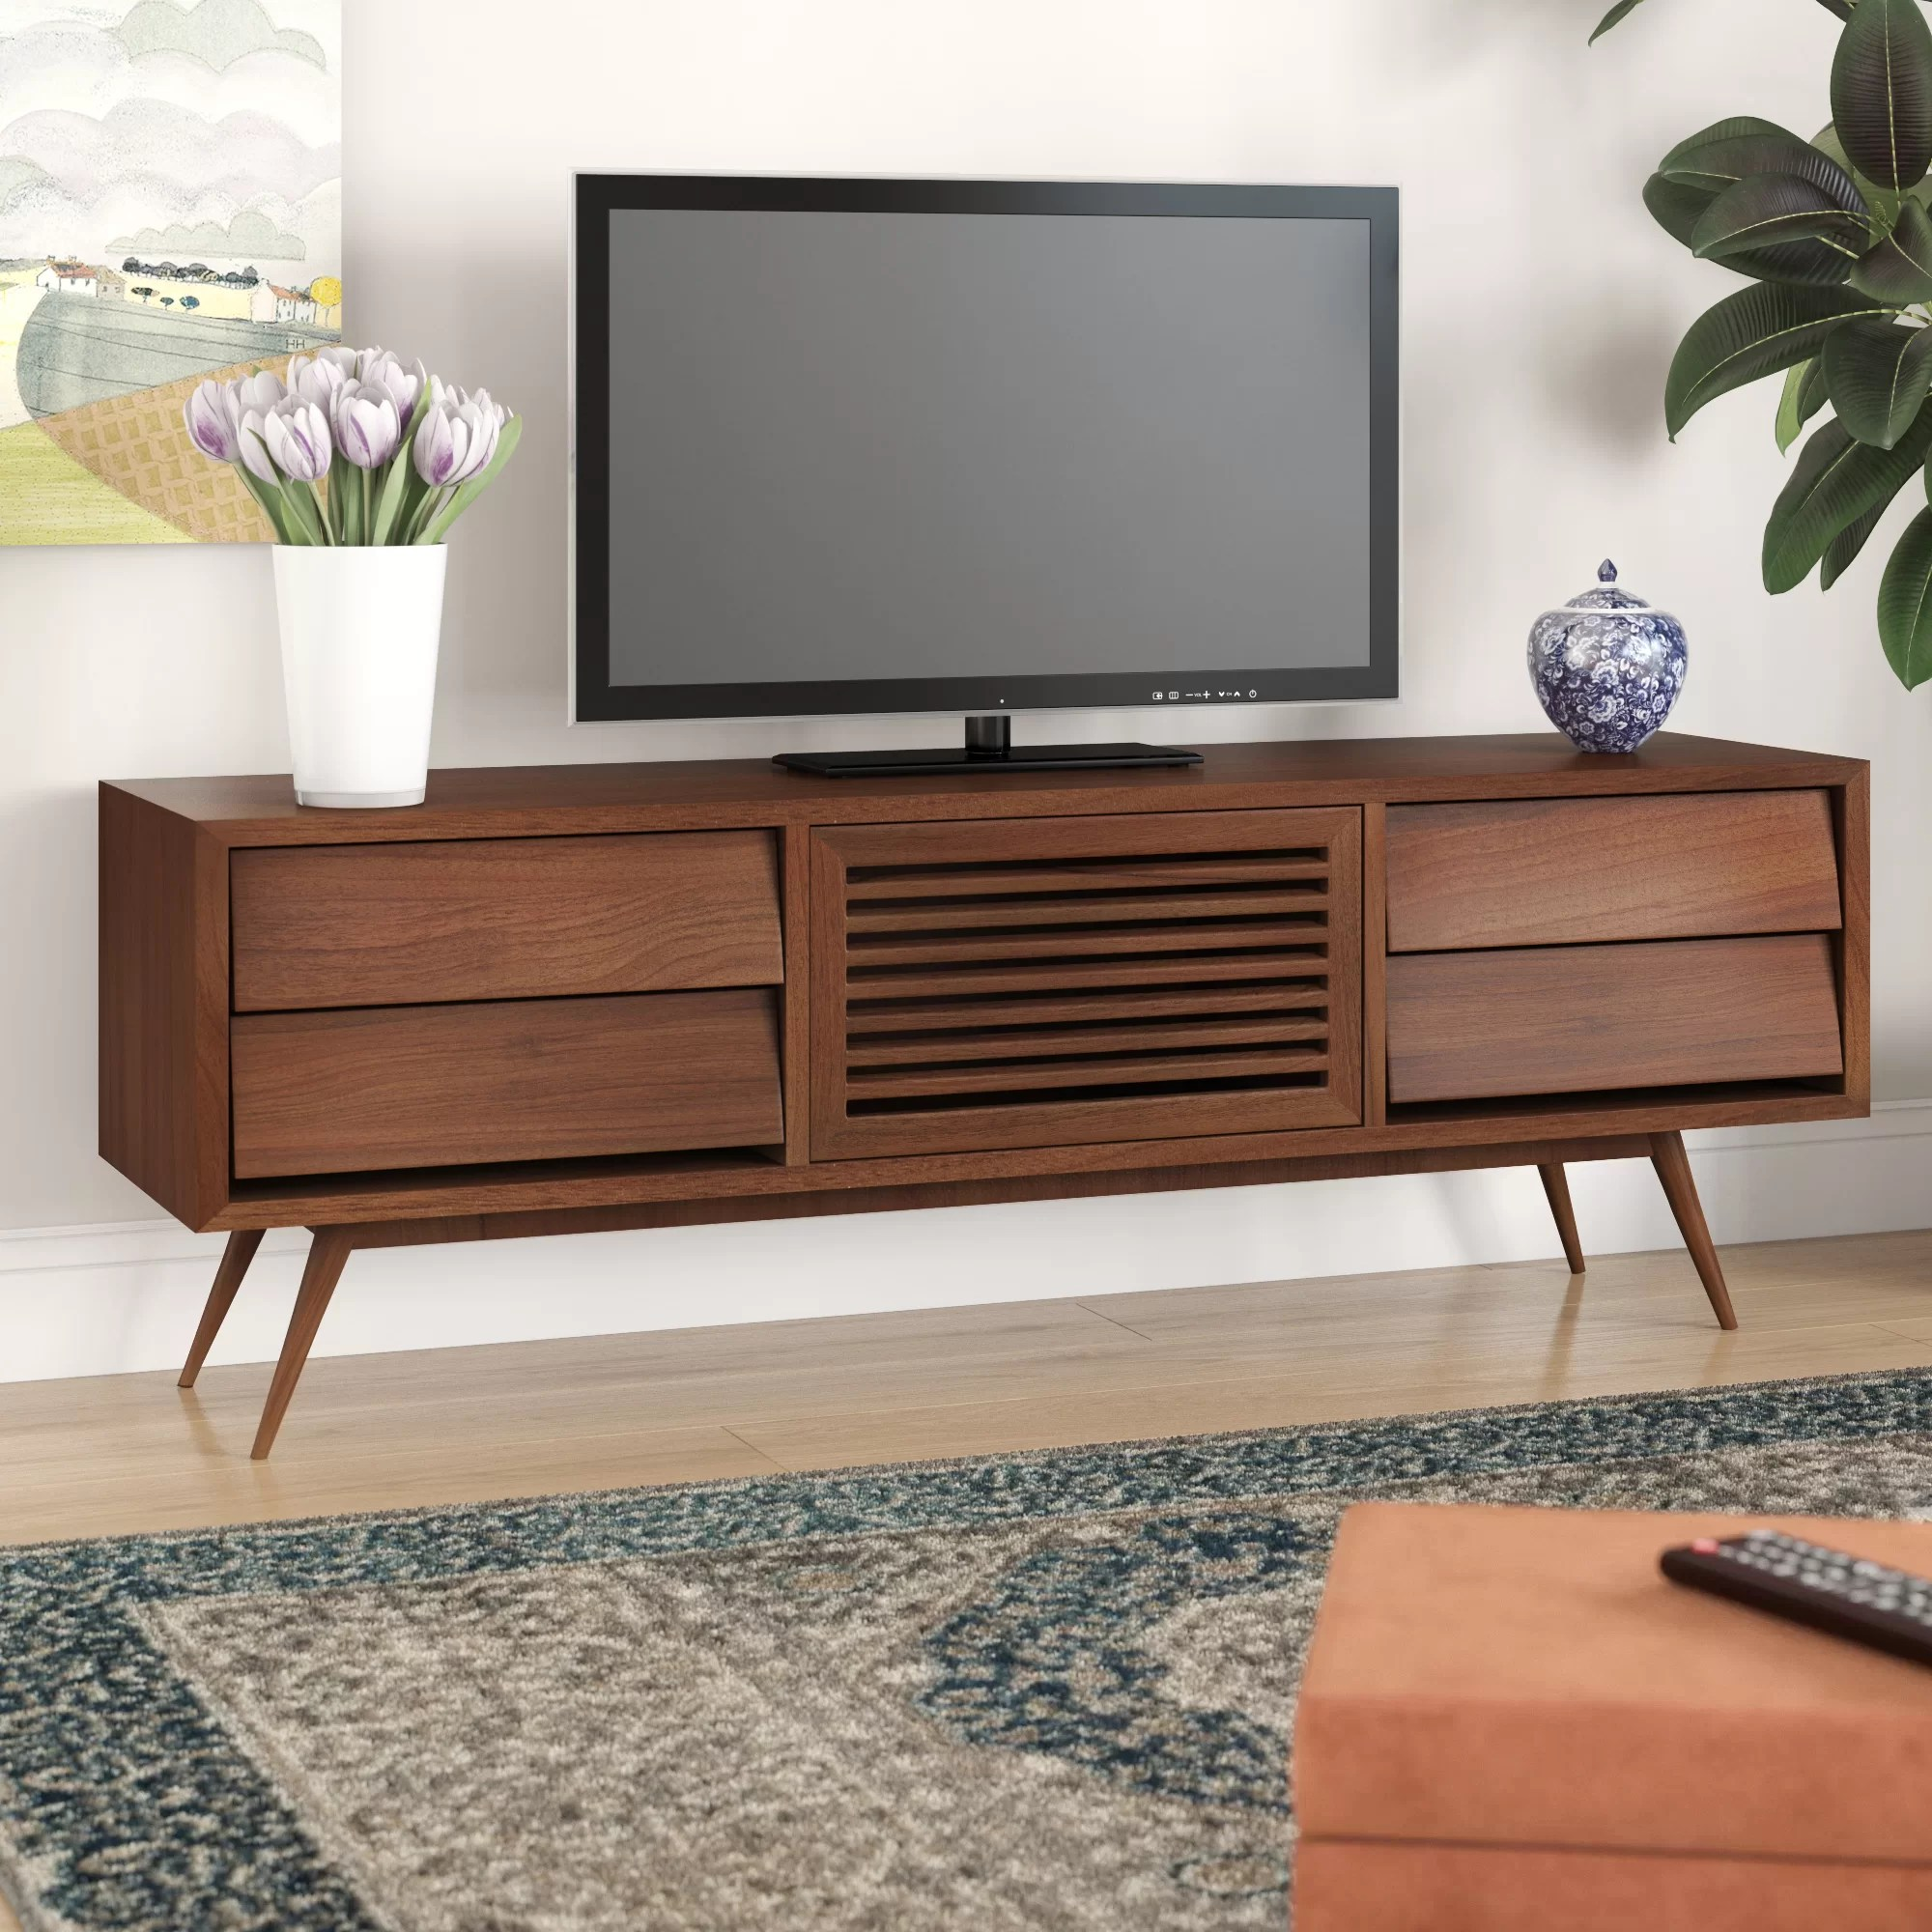 Corrigan Studio Garrick Solid Wood Tv Stand For Tvs Up To 78 Wayfair